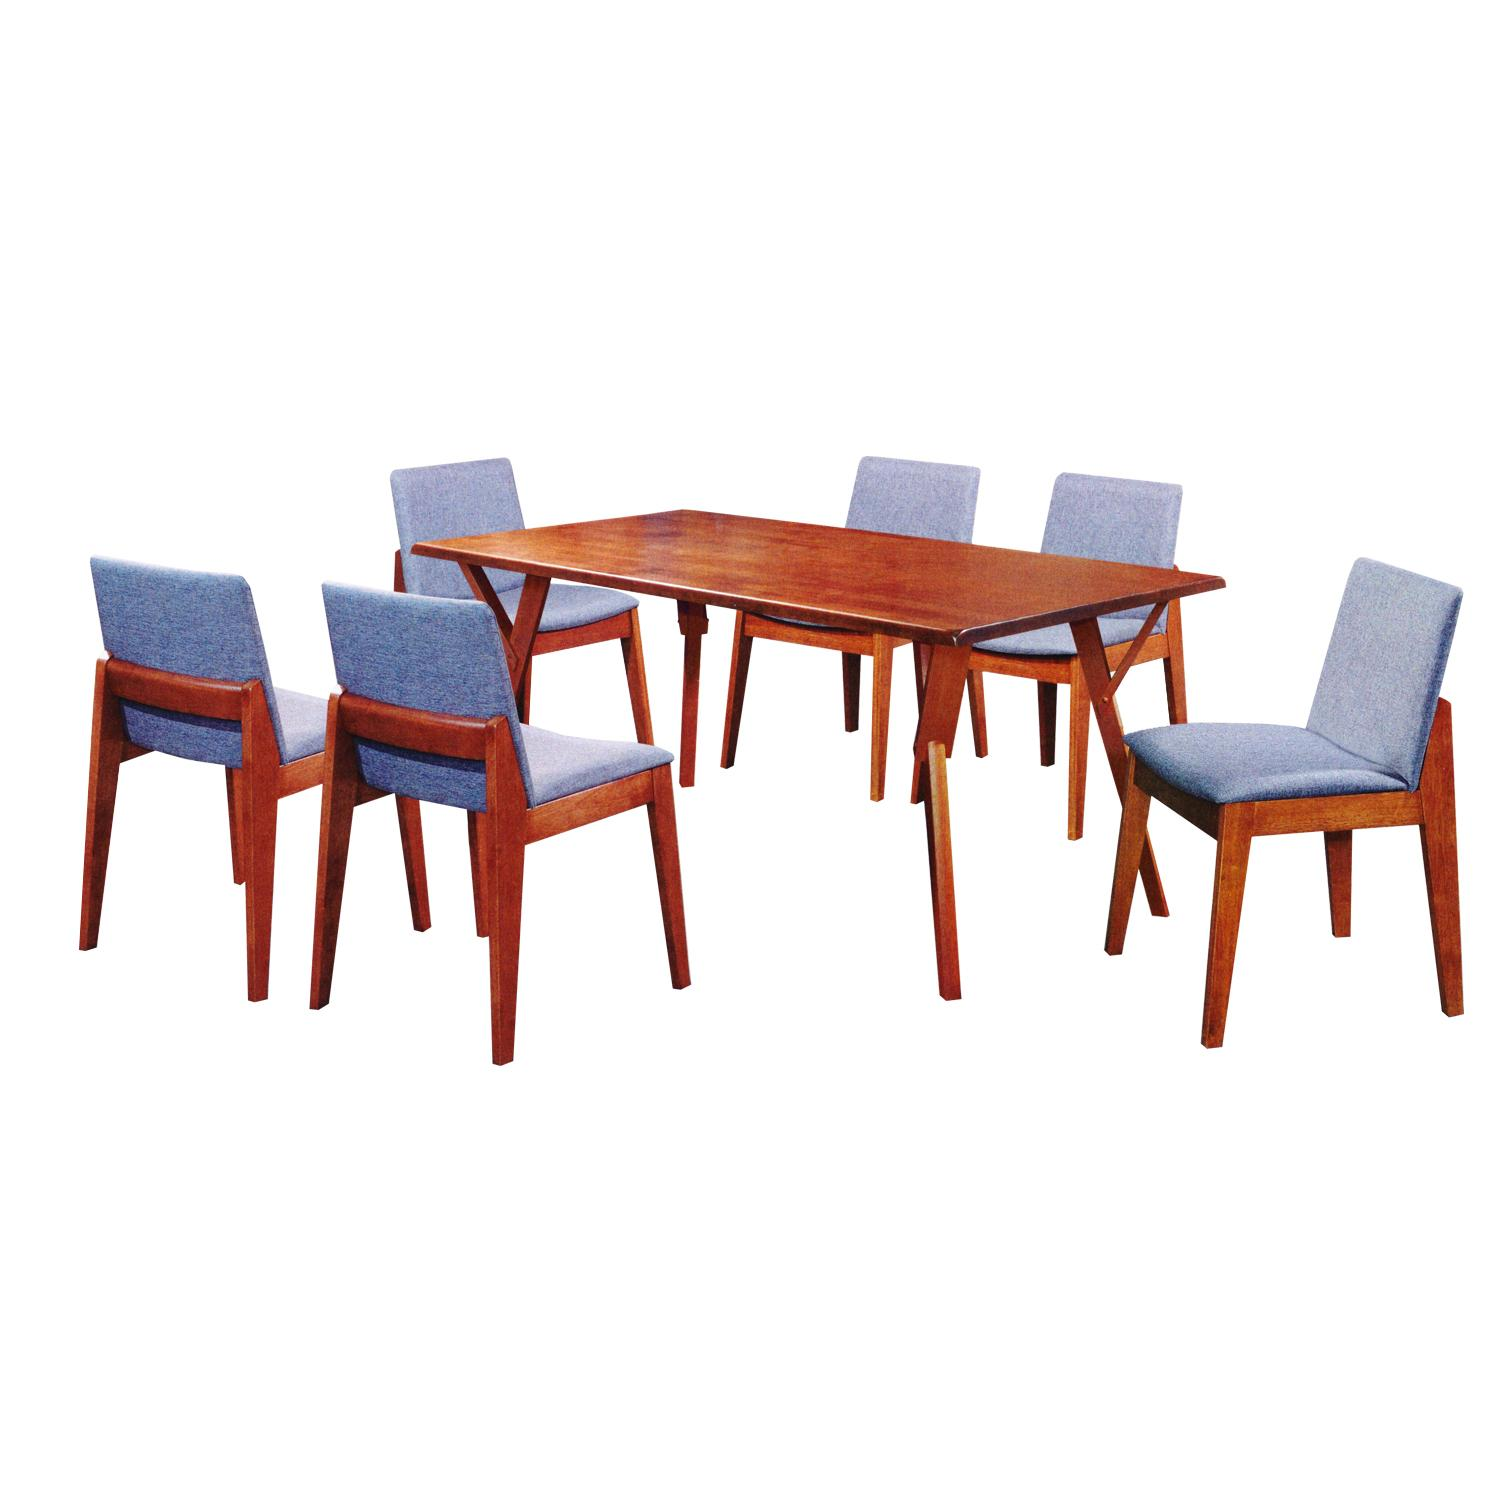 LIVING MALL_Faramond 2 Dining Set 1+6_FREE DELIVERY